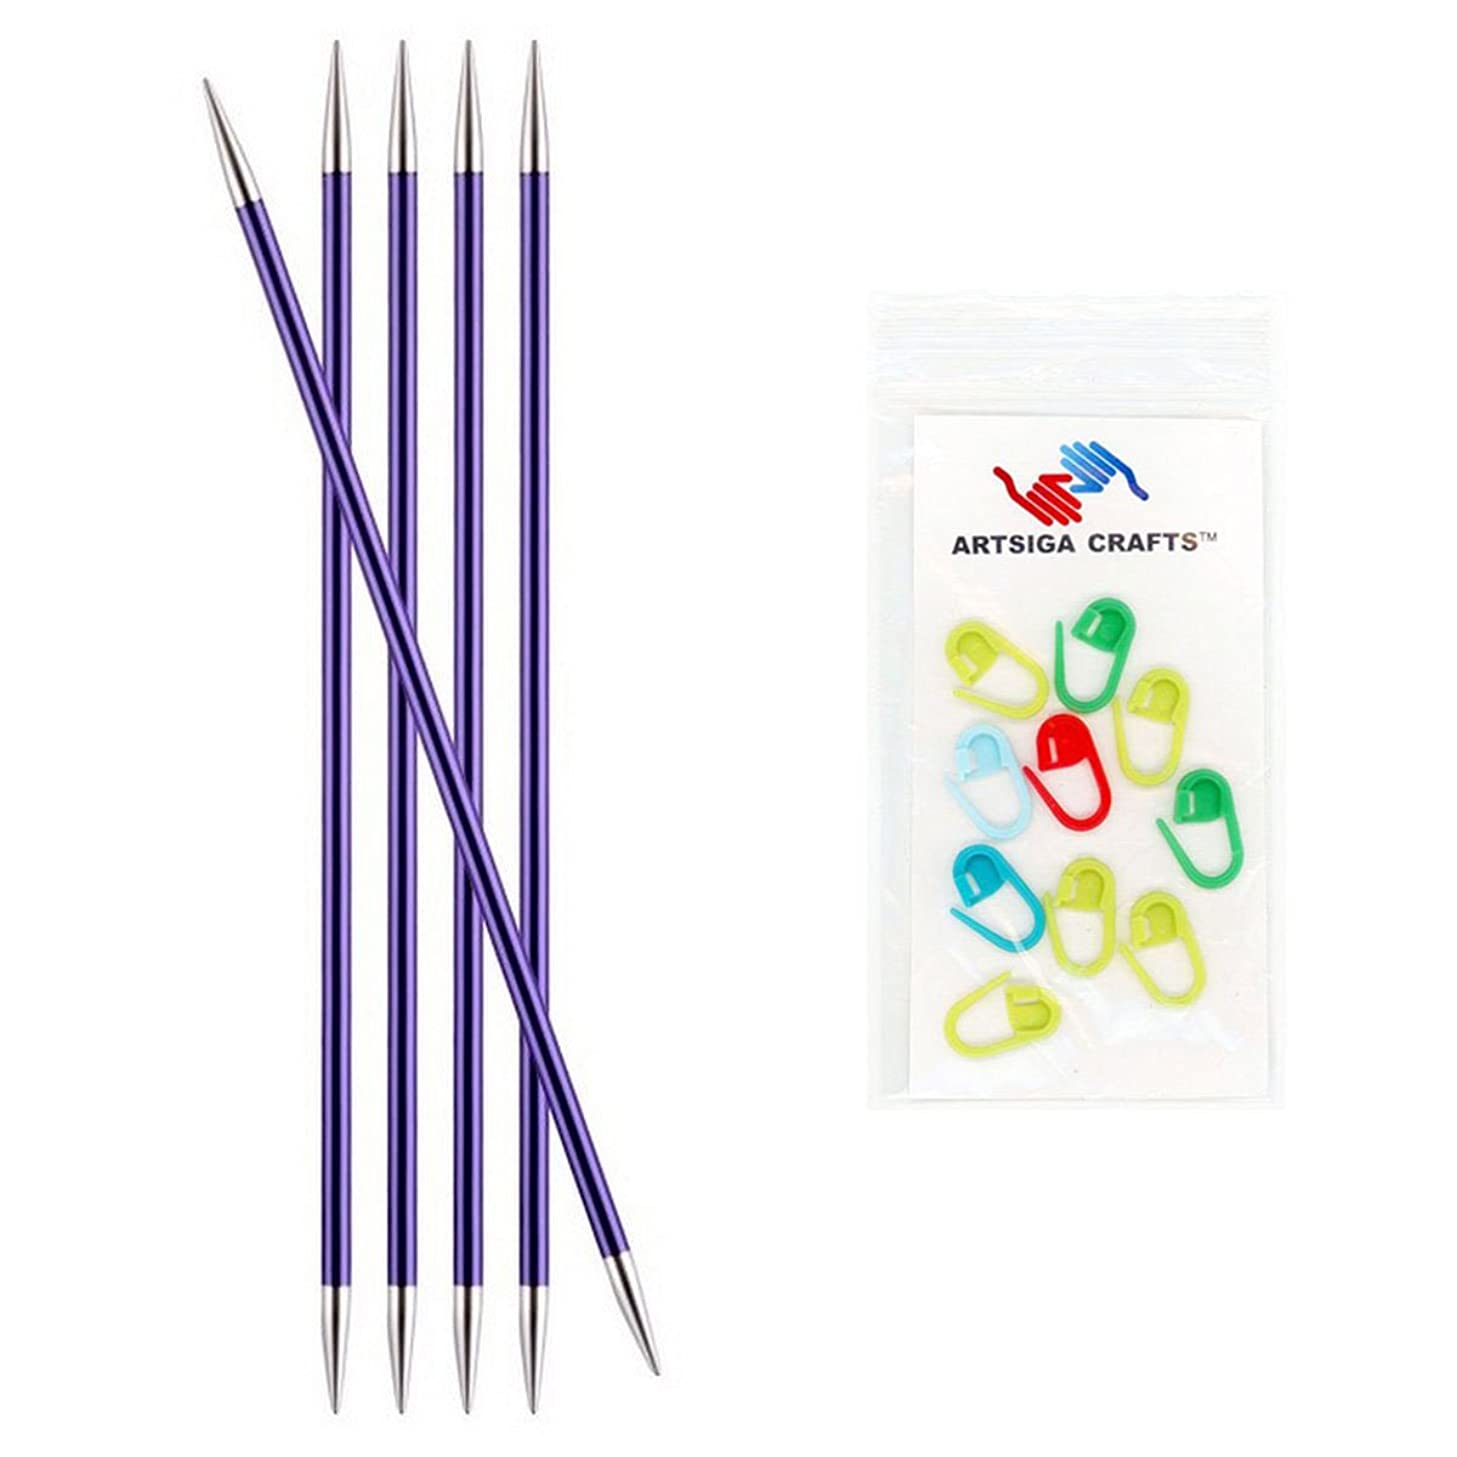 Knitter's Pride Zing Double Pointed Knitting Needles 8in. Size US 5 (3.75mm) Bundle with 10 Artsiga Crafts Stitch Markers 140038